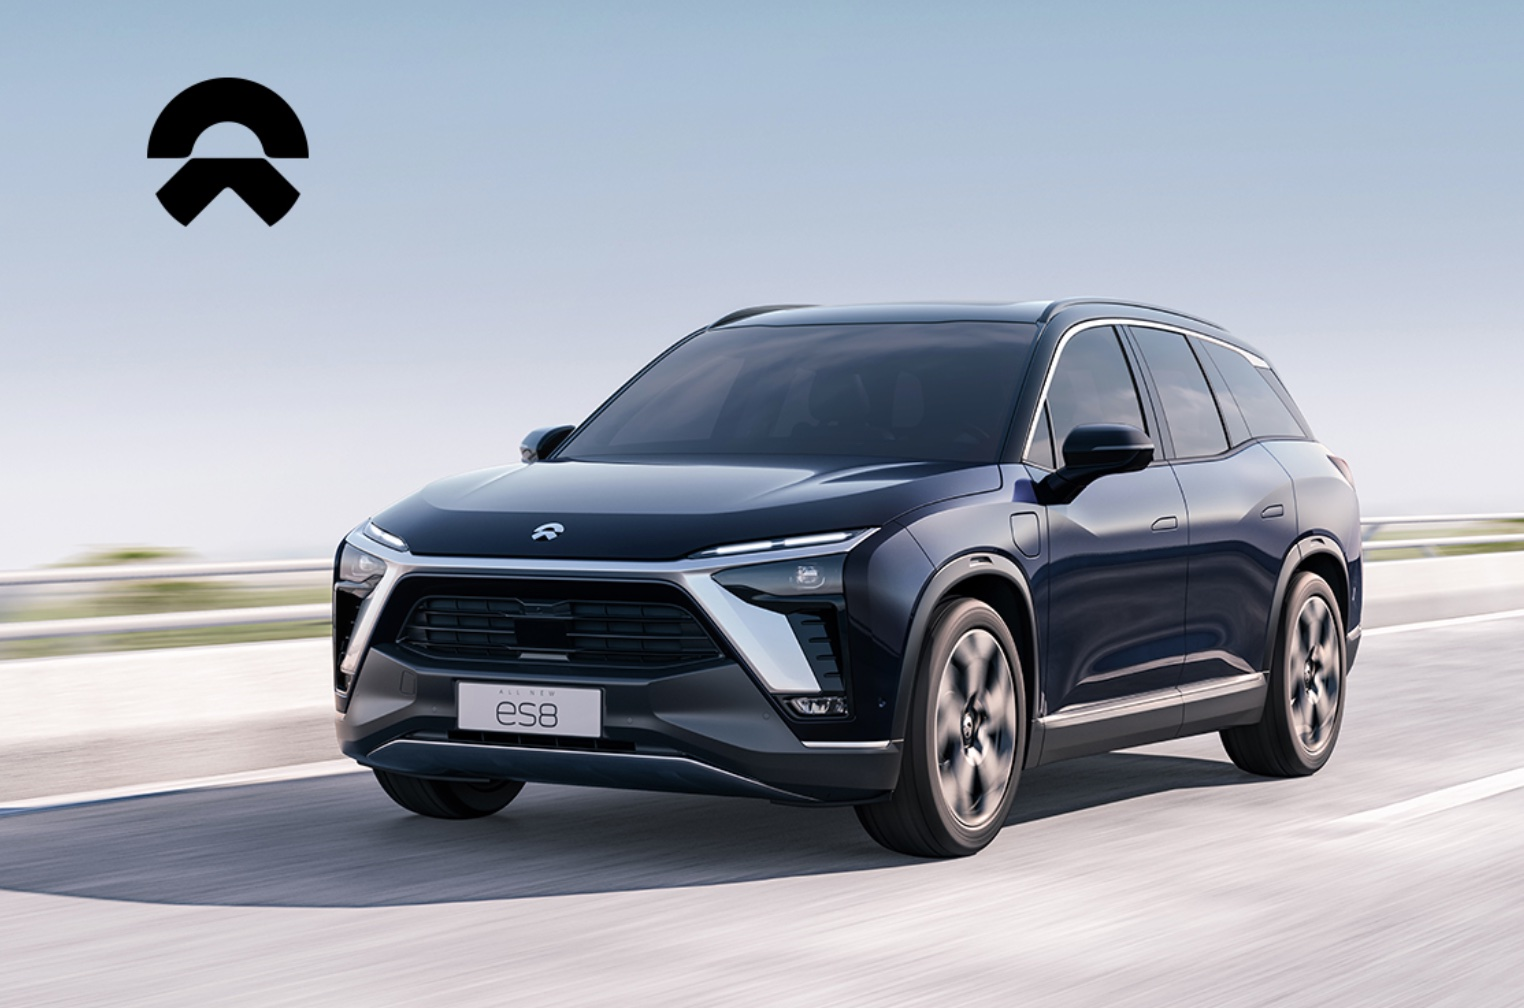 NIO subsidiary adds used car brokerage to its business scope-cnTechPost